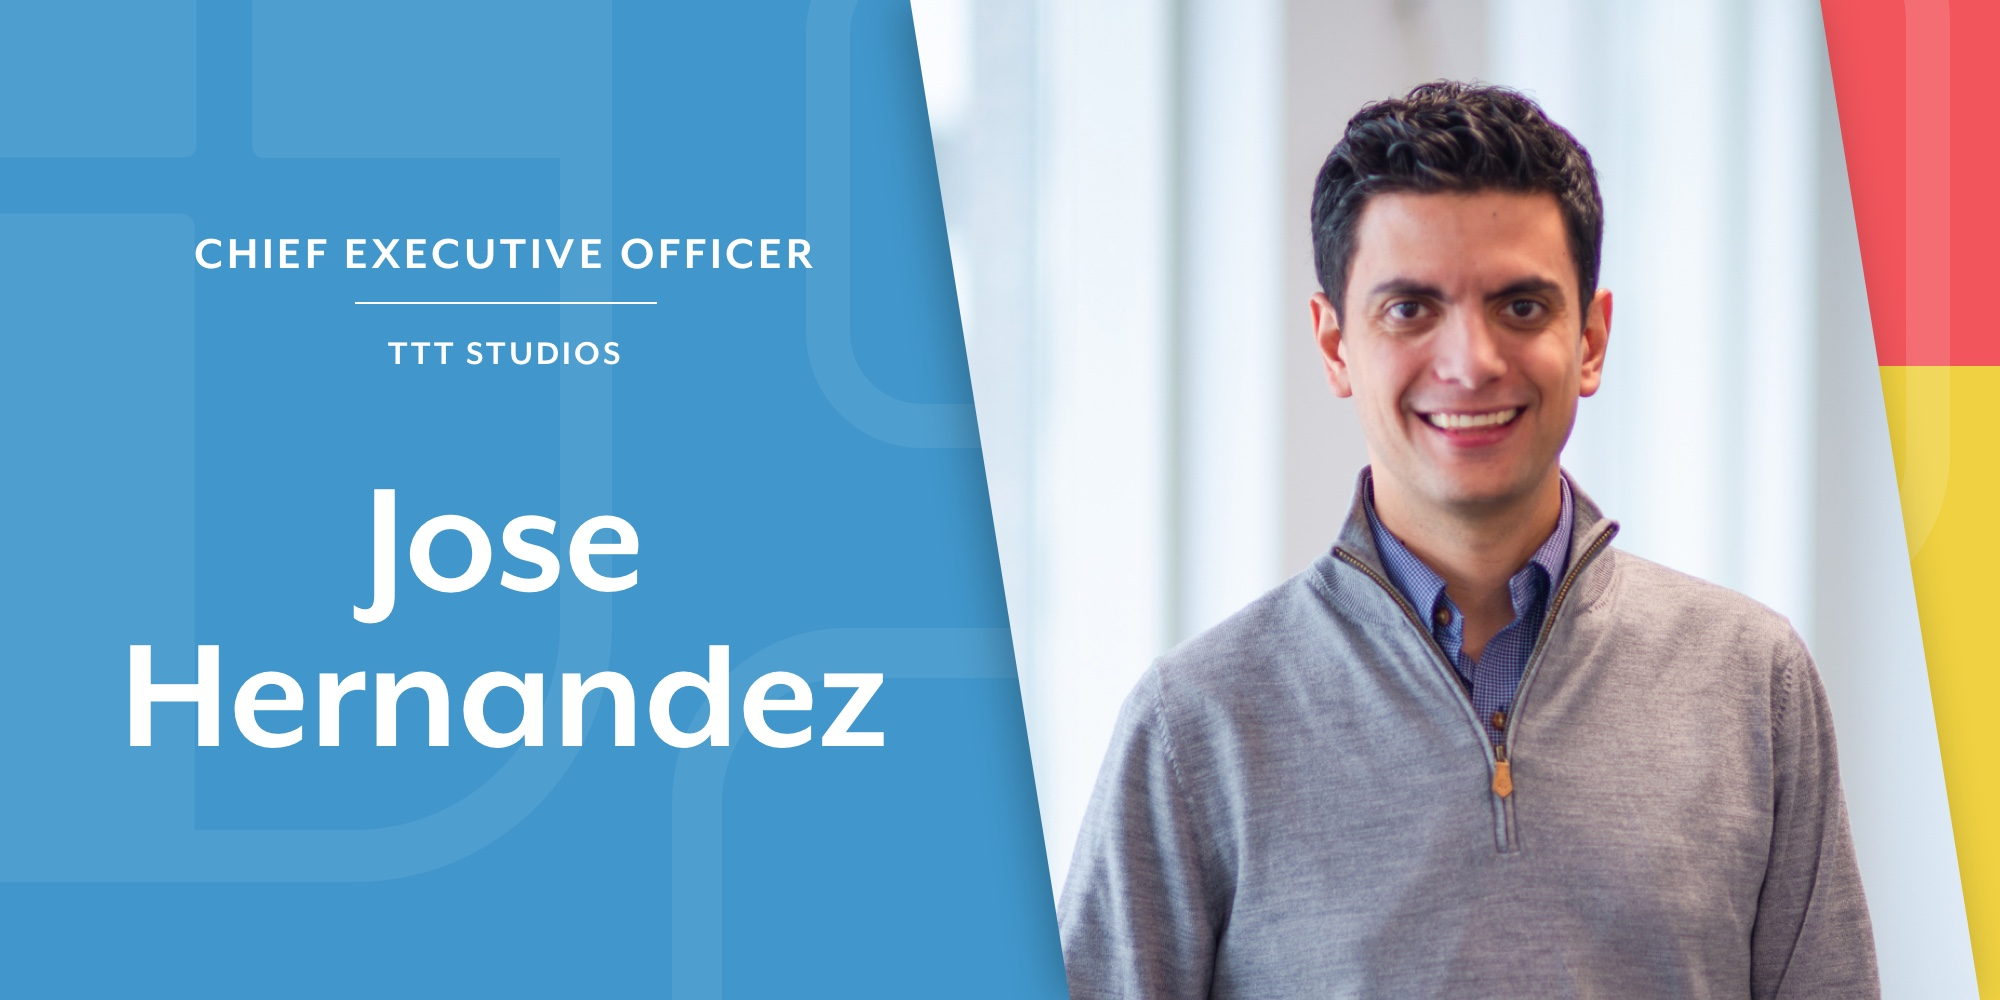 Introducing our new CEO: Jose Hernandez